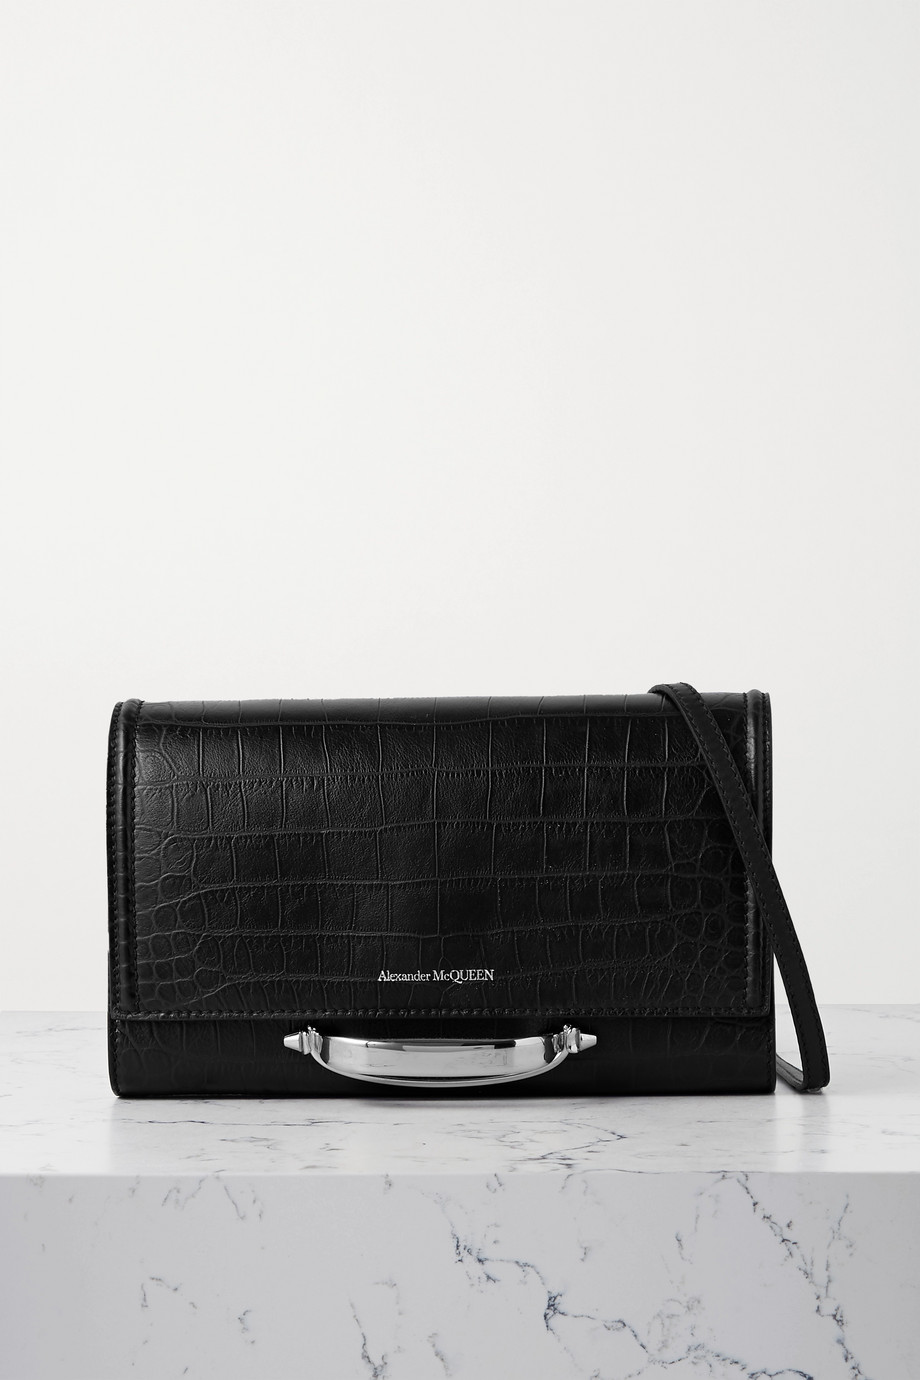 Alexander McQueen The Story croc-effect leather shoulder bag